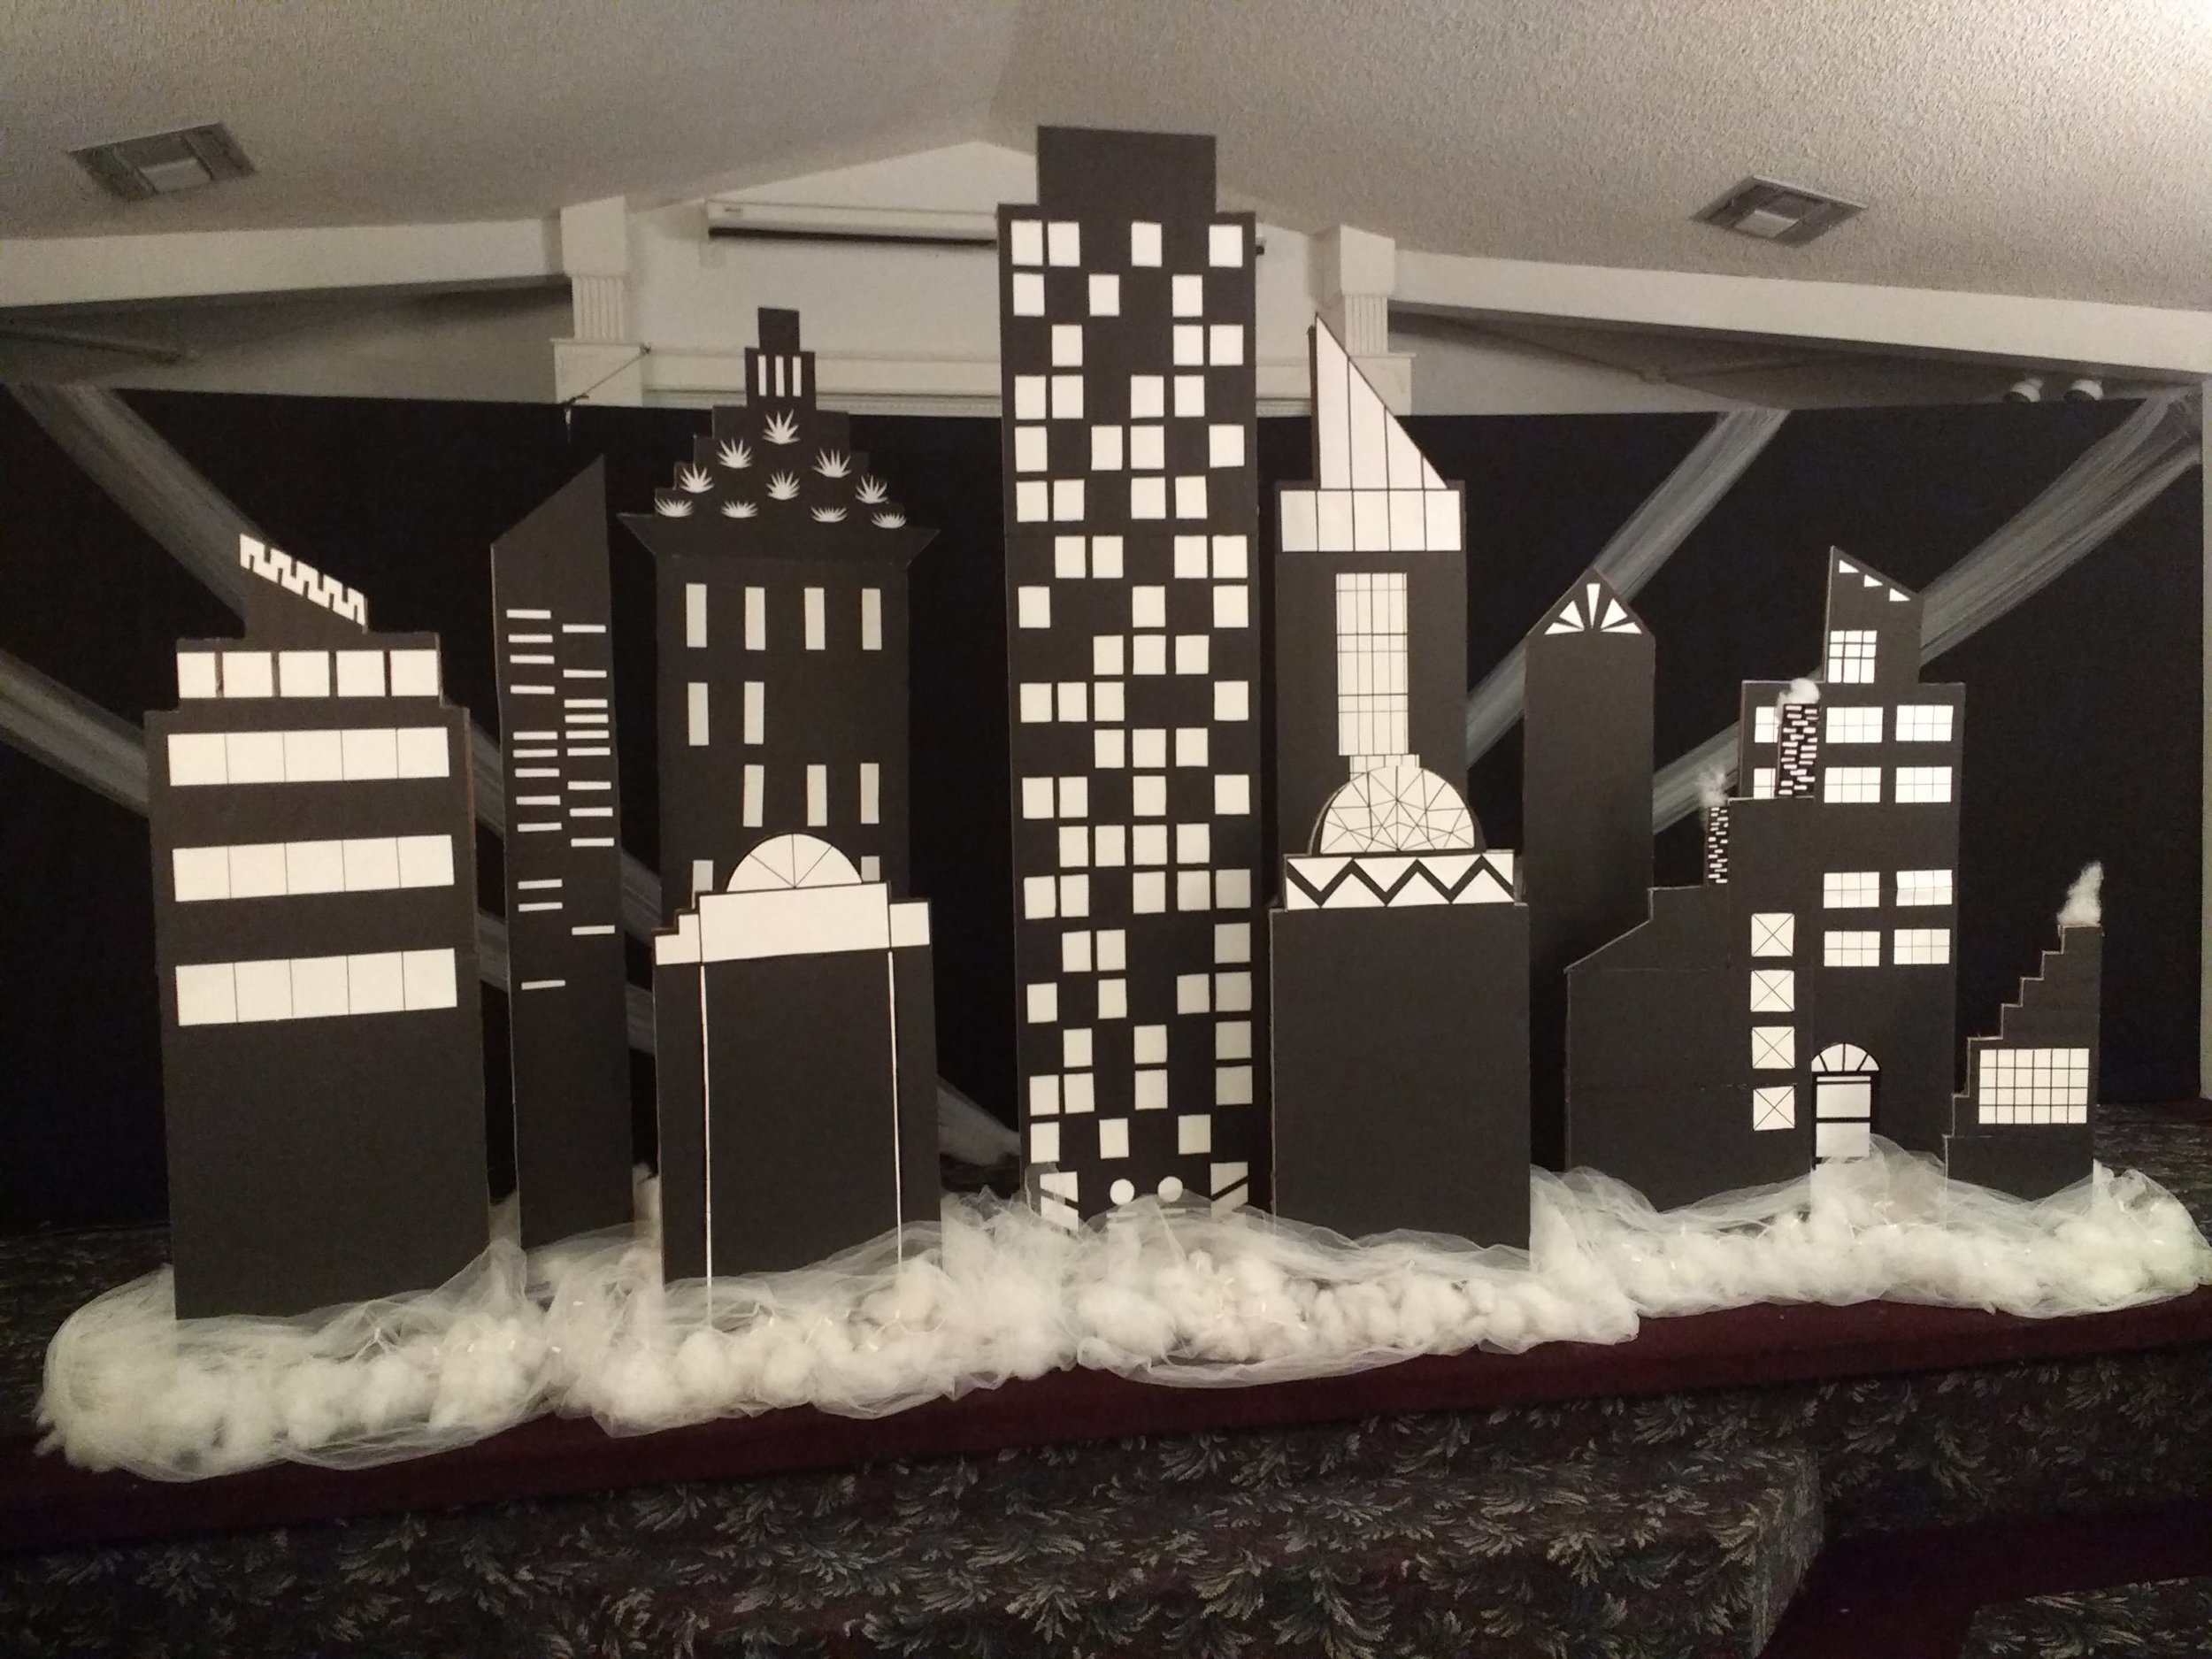 The theme for the banquet this year, was New York City